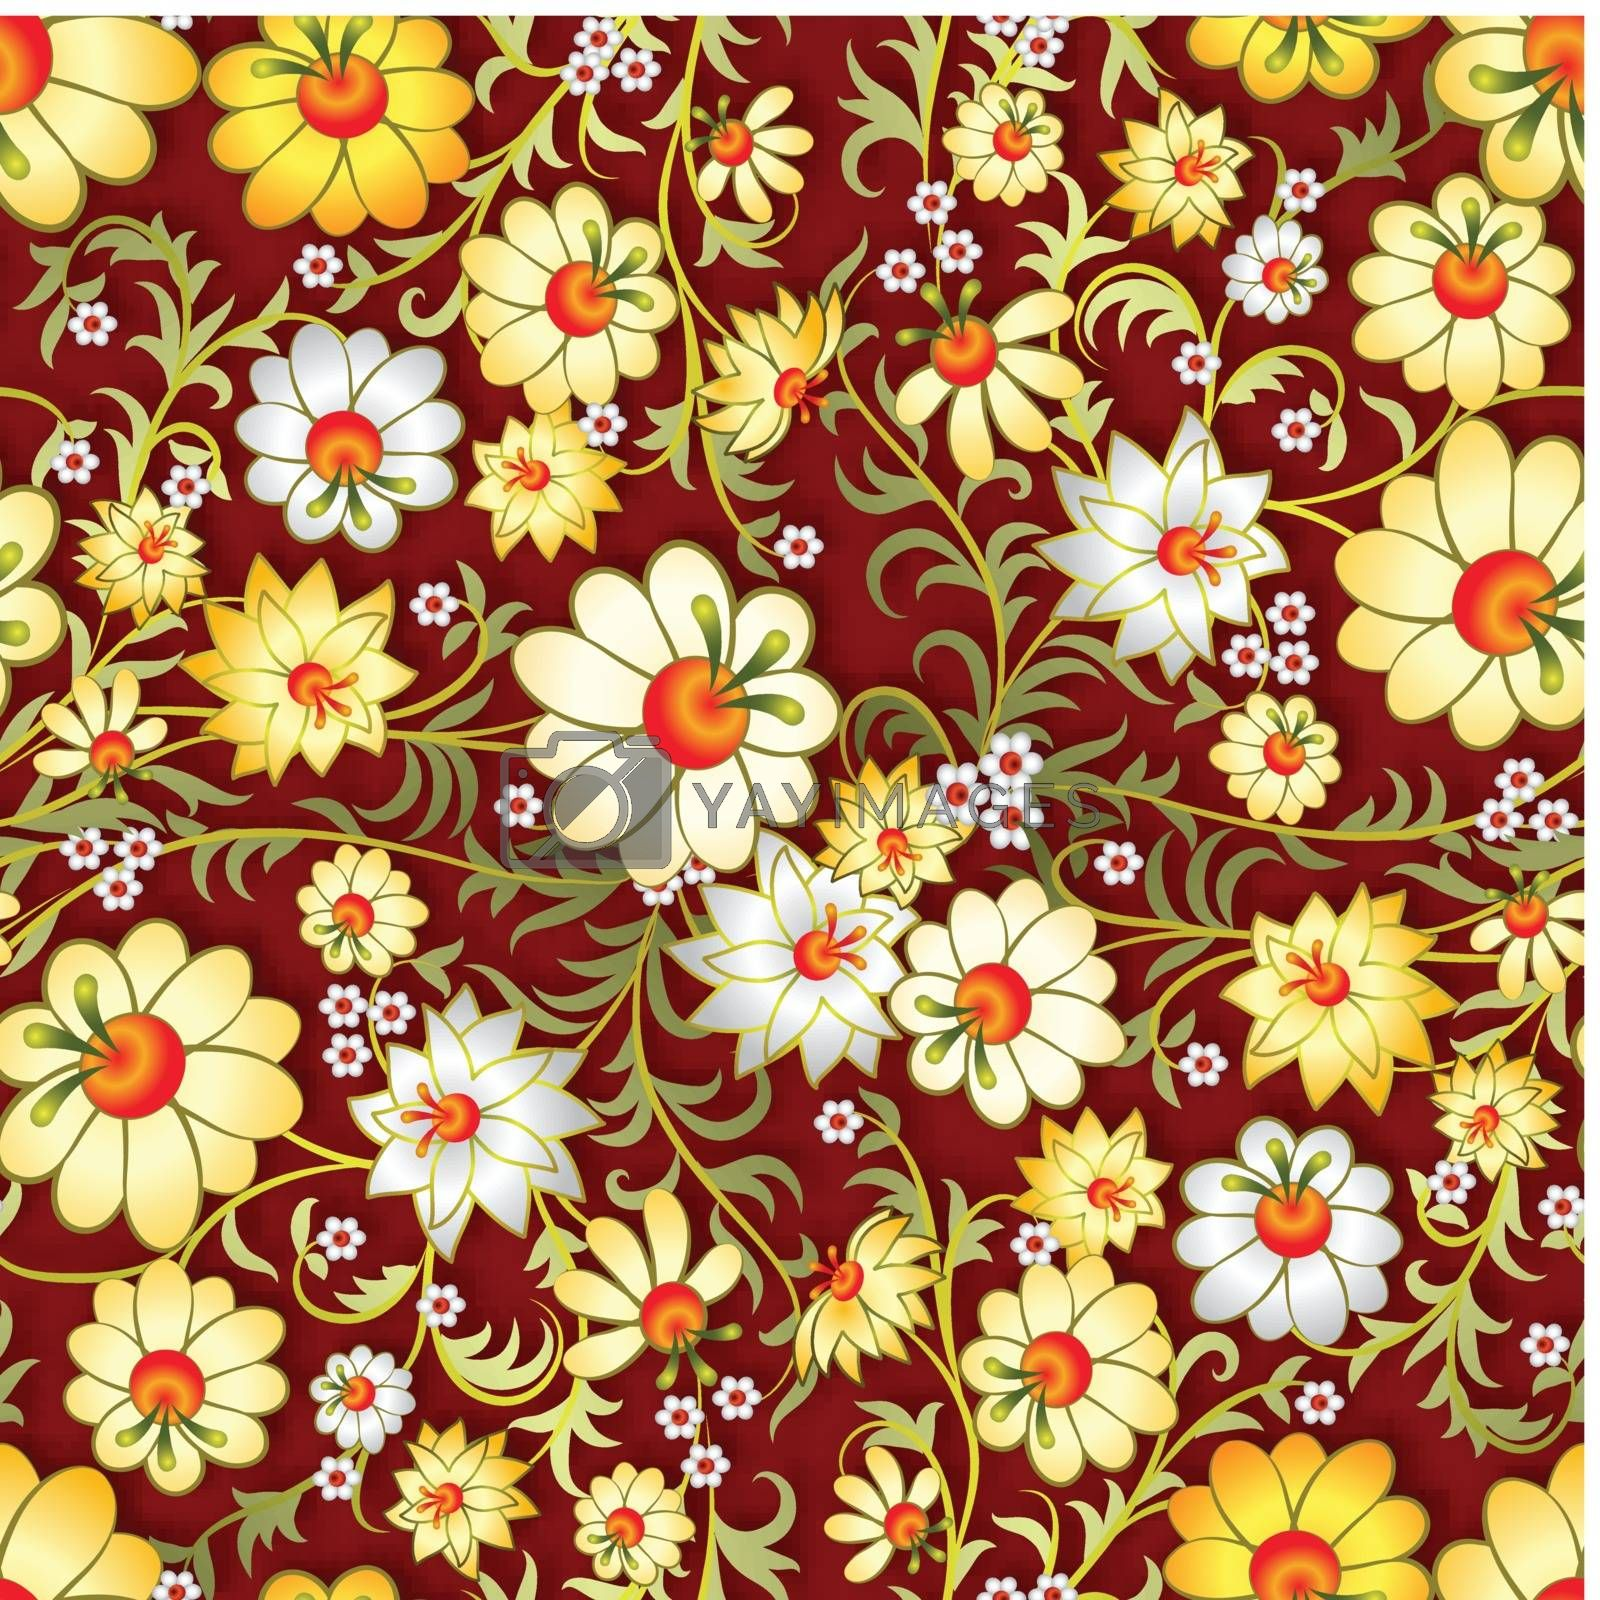 abstract seamless floral ornament with spring flowers by lem